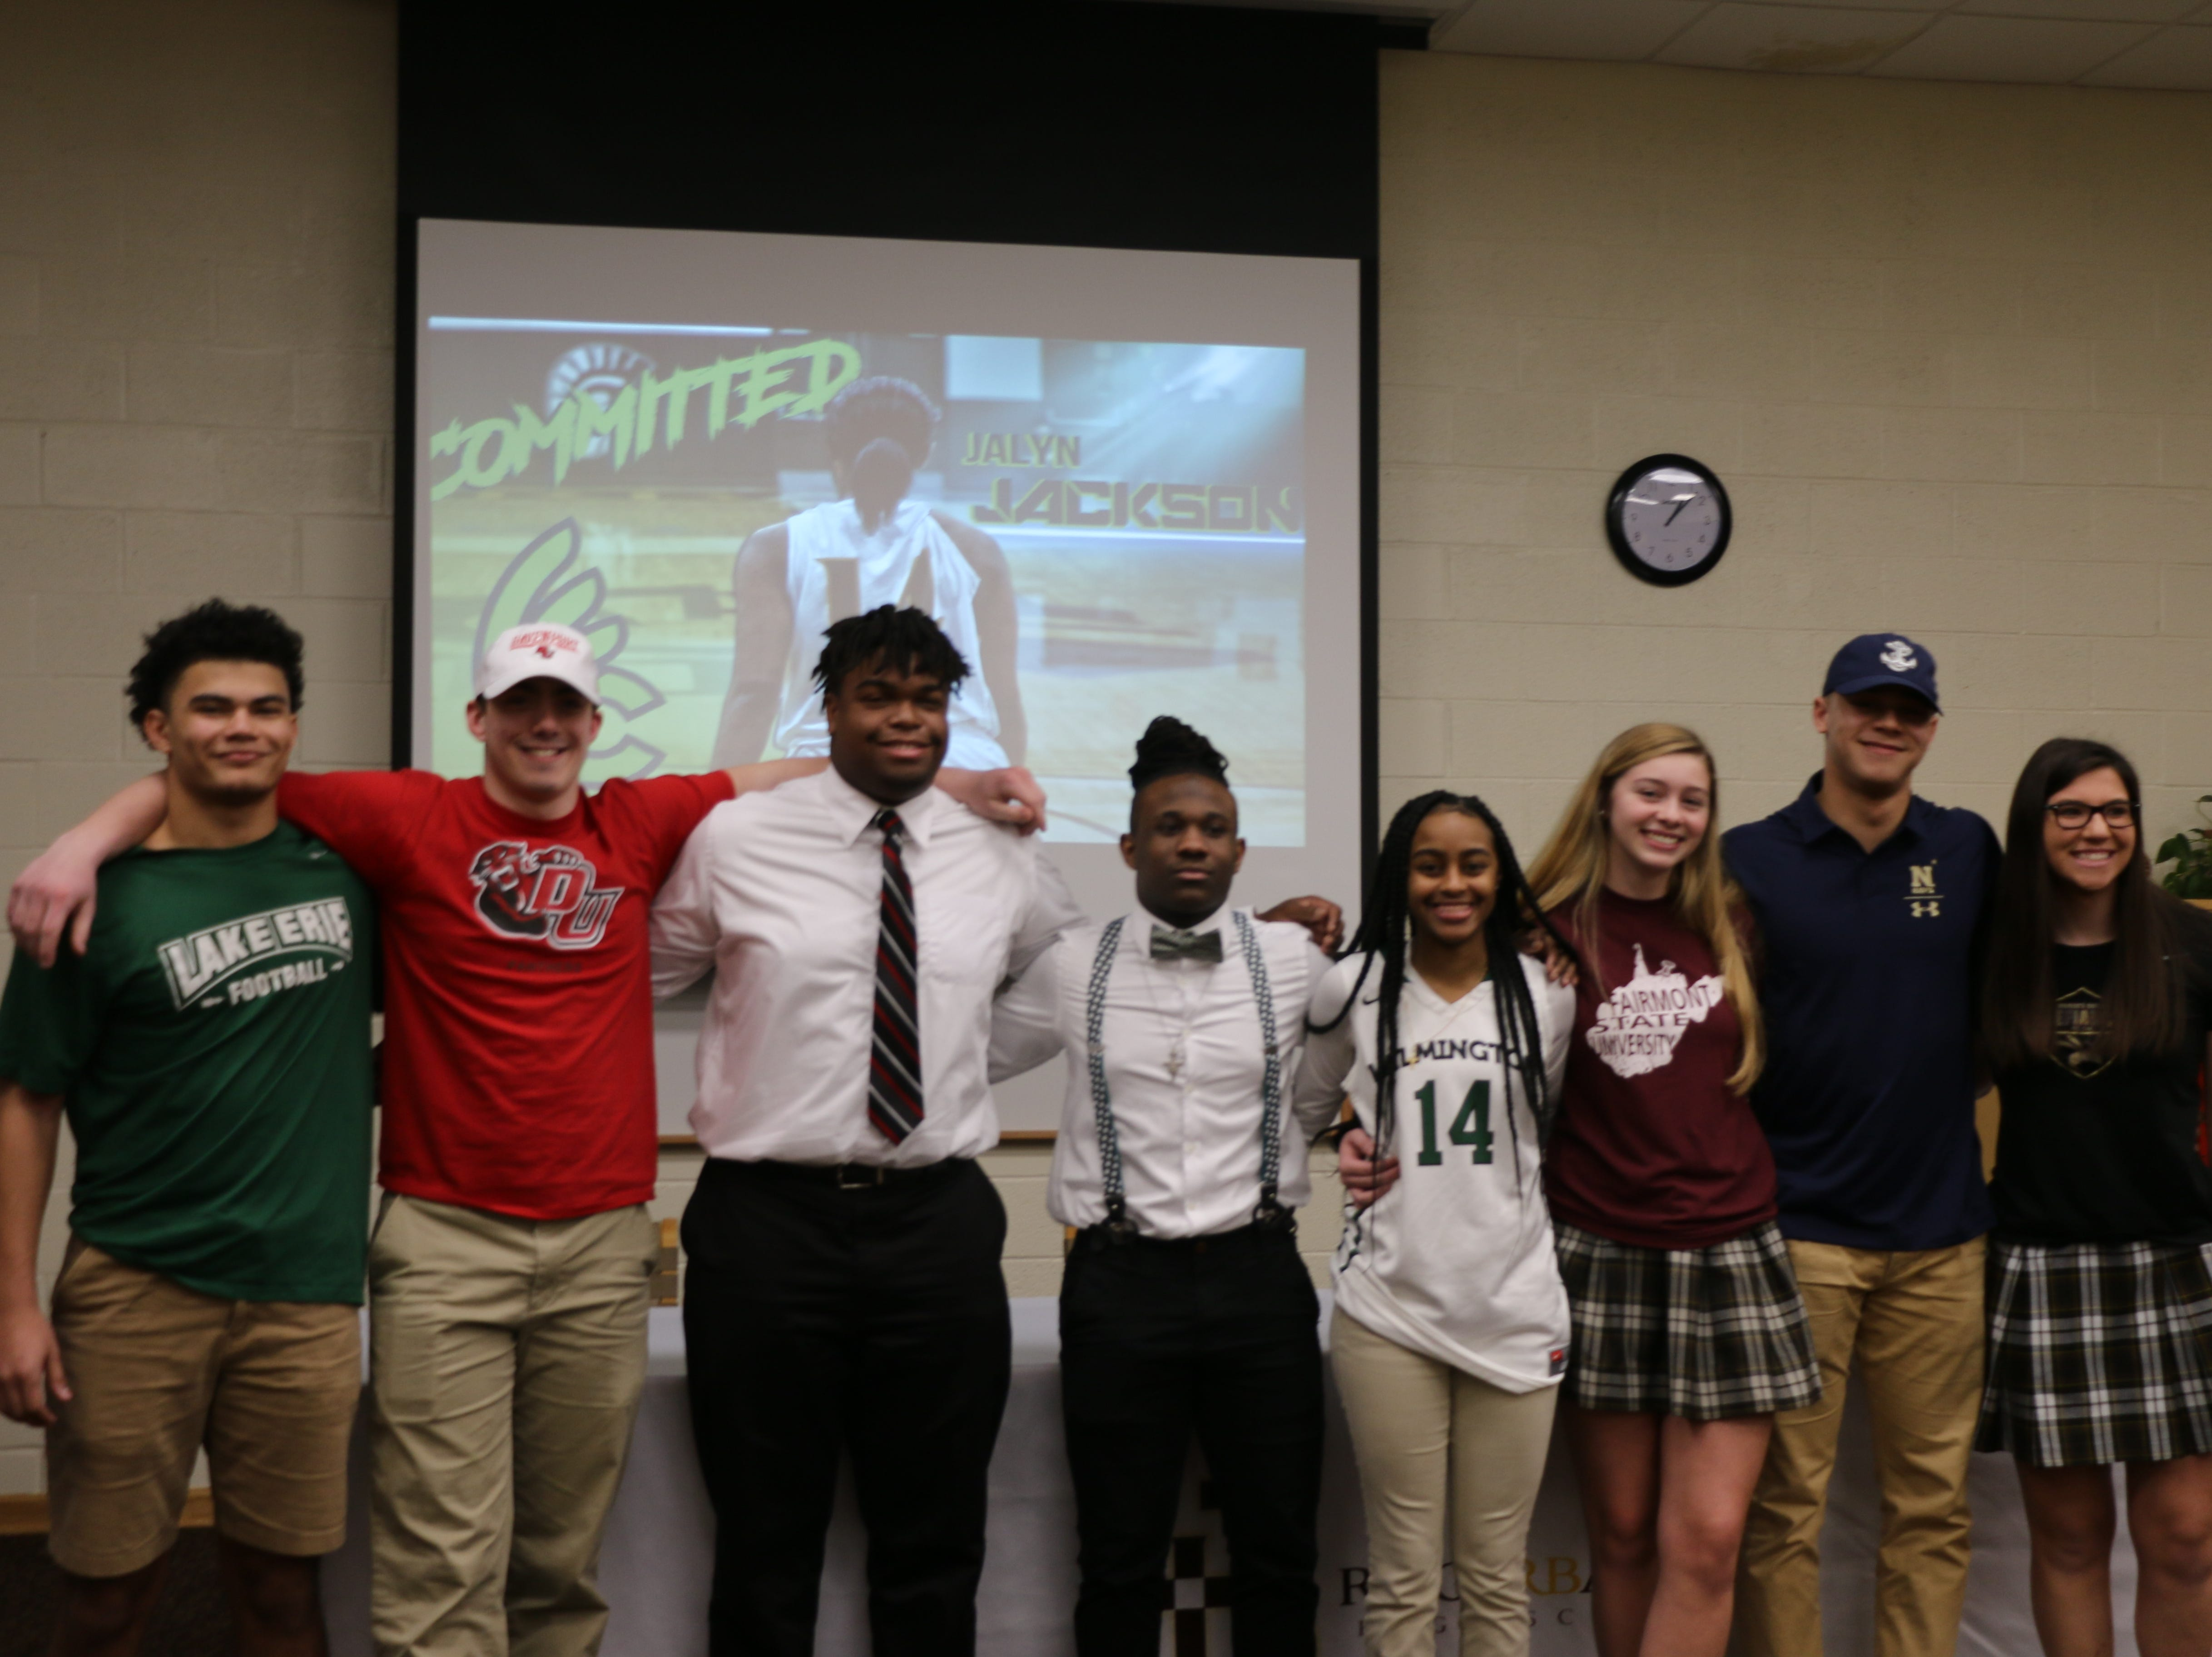 Roger Bacon athletes signed their letters of intent to play college sports Feb. 6, 2019. They are, from left: Stan Hart (football, Lake Erie College), Zak Cappel (football, Davenport University), Dylan Polk (football, Walsh University), Brandon Tumlin (football, Wilmington College), Jalyn Jackson (basketball, Wilmington College), Anna Schulkers (soccer, Fairmont State), Zach Kuhlman (football, U.S. Naval Academy) and Ally Enneking (soccer, Defiance College).